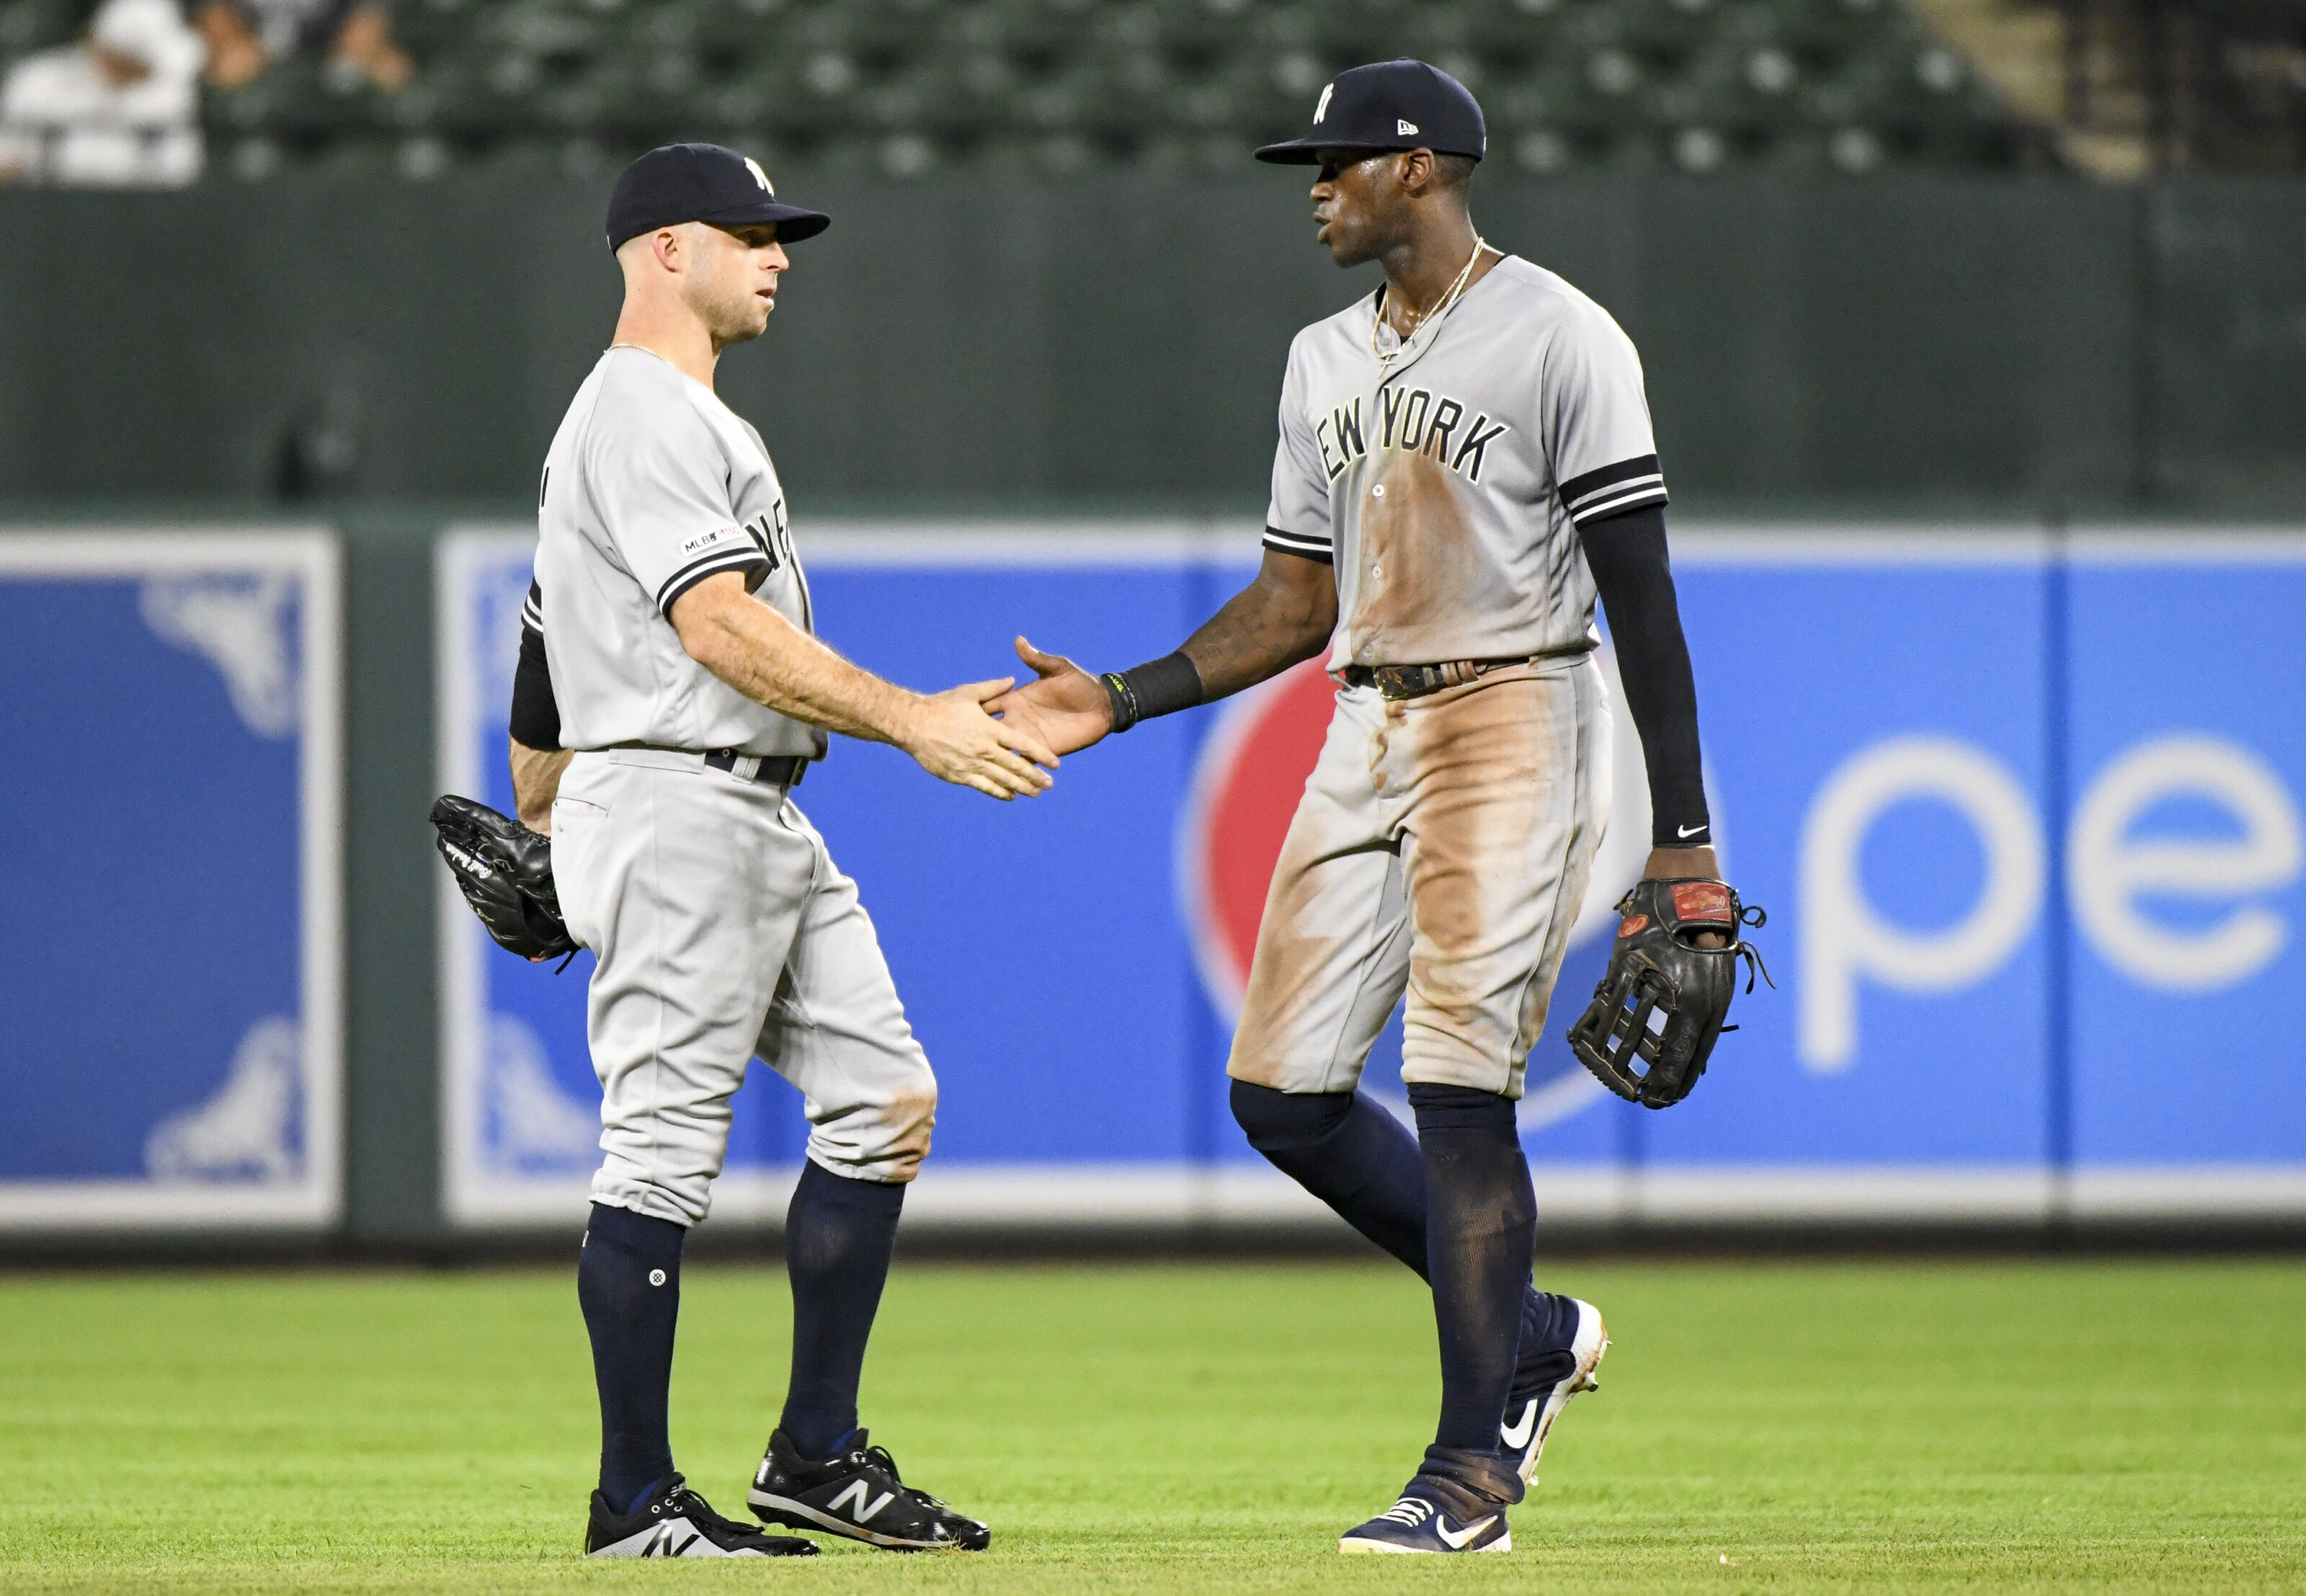 Daily Fantasy Baseball Picks: Trends to pick on for August 9th